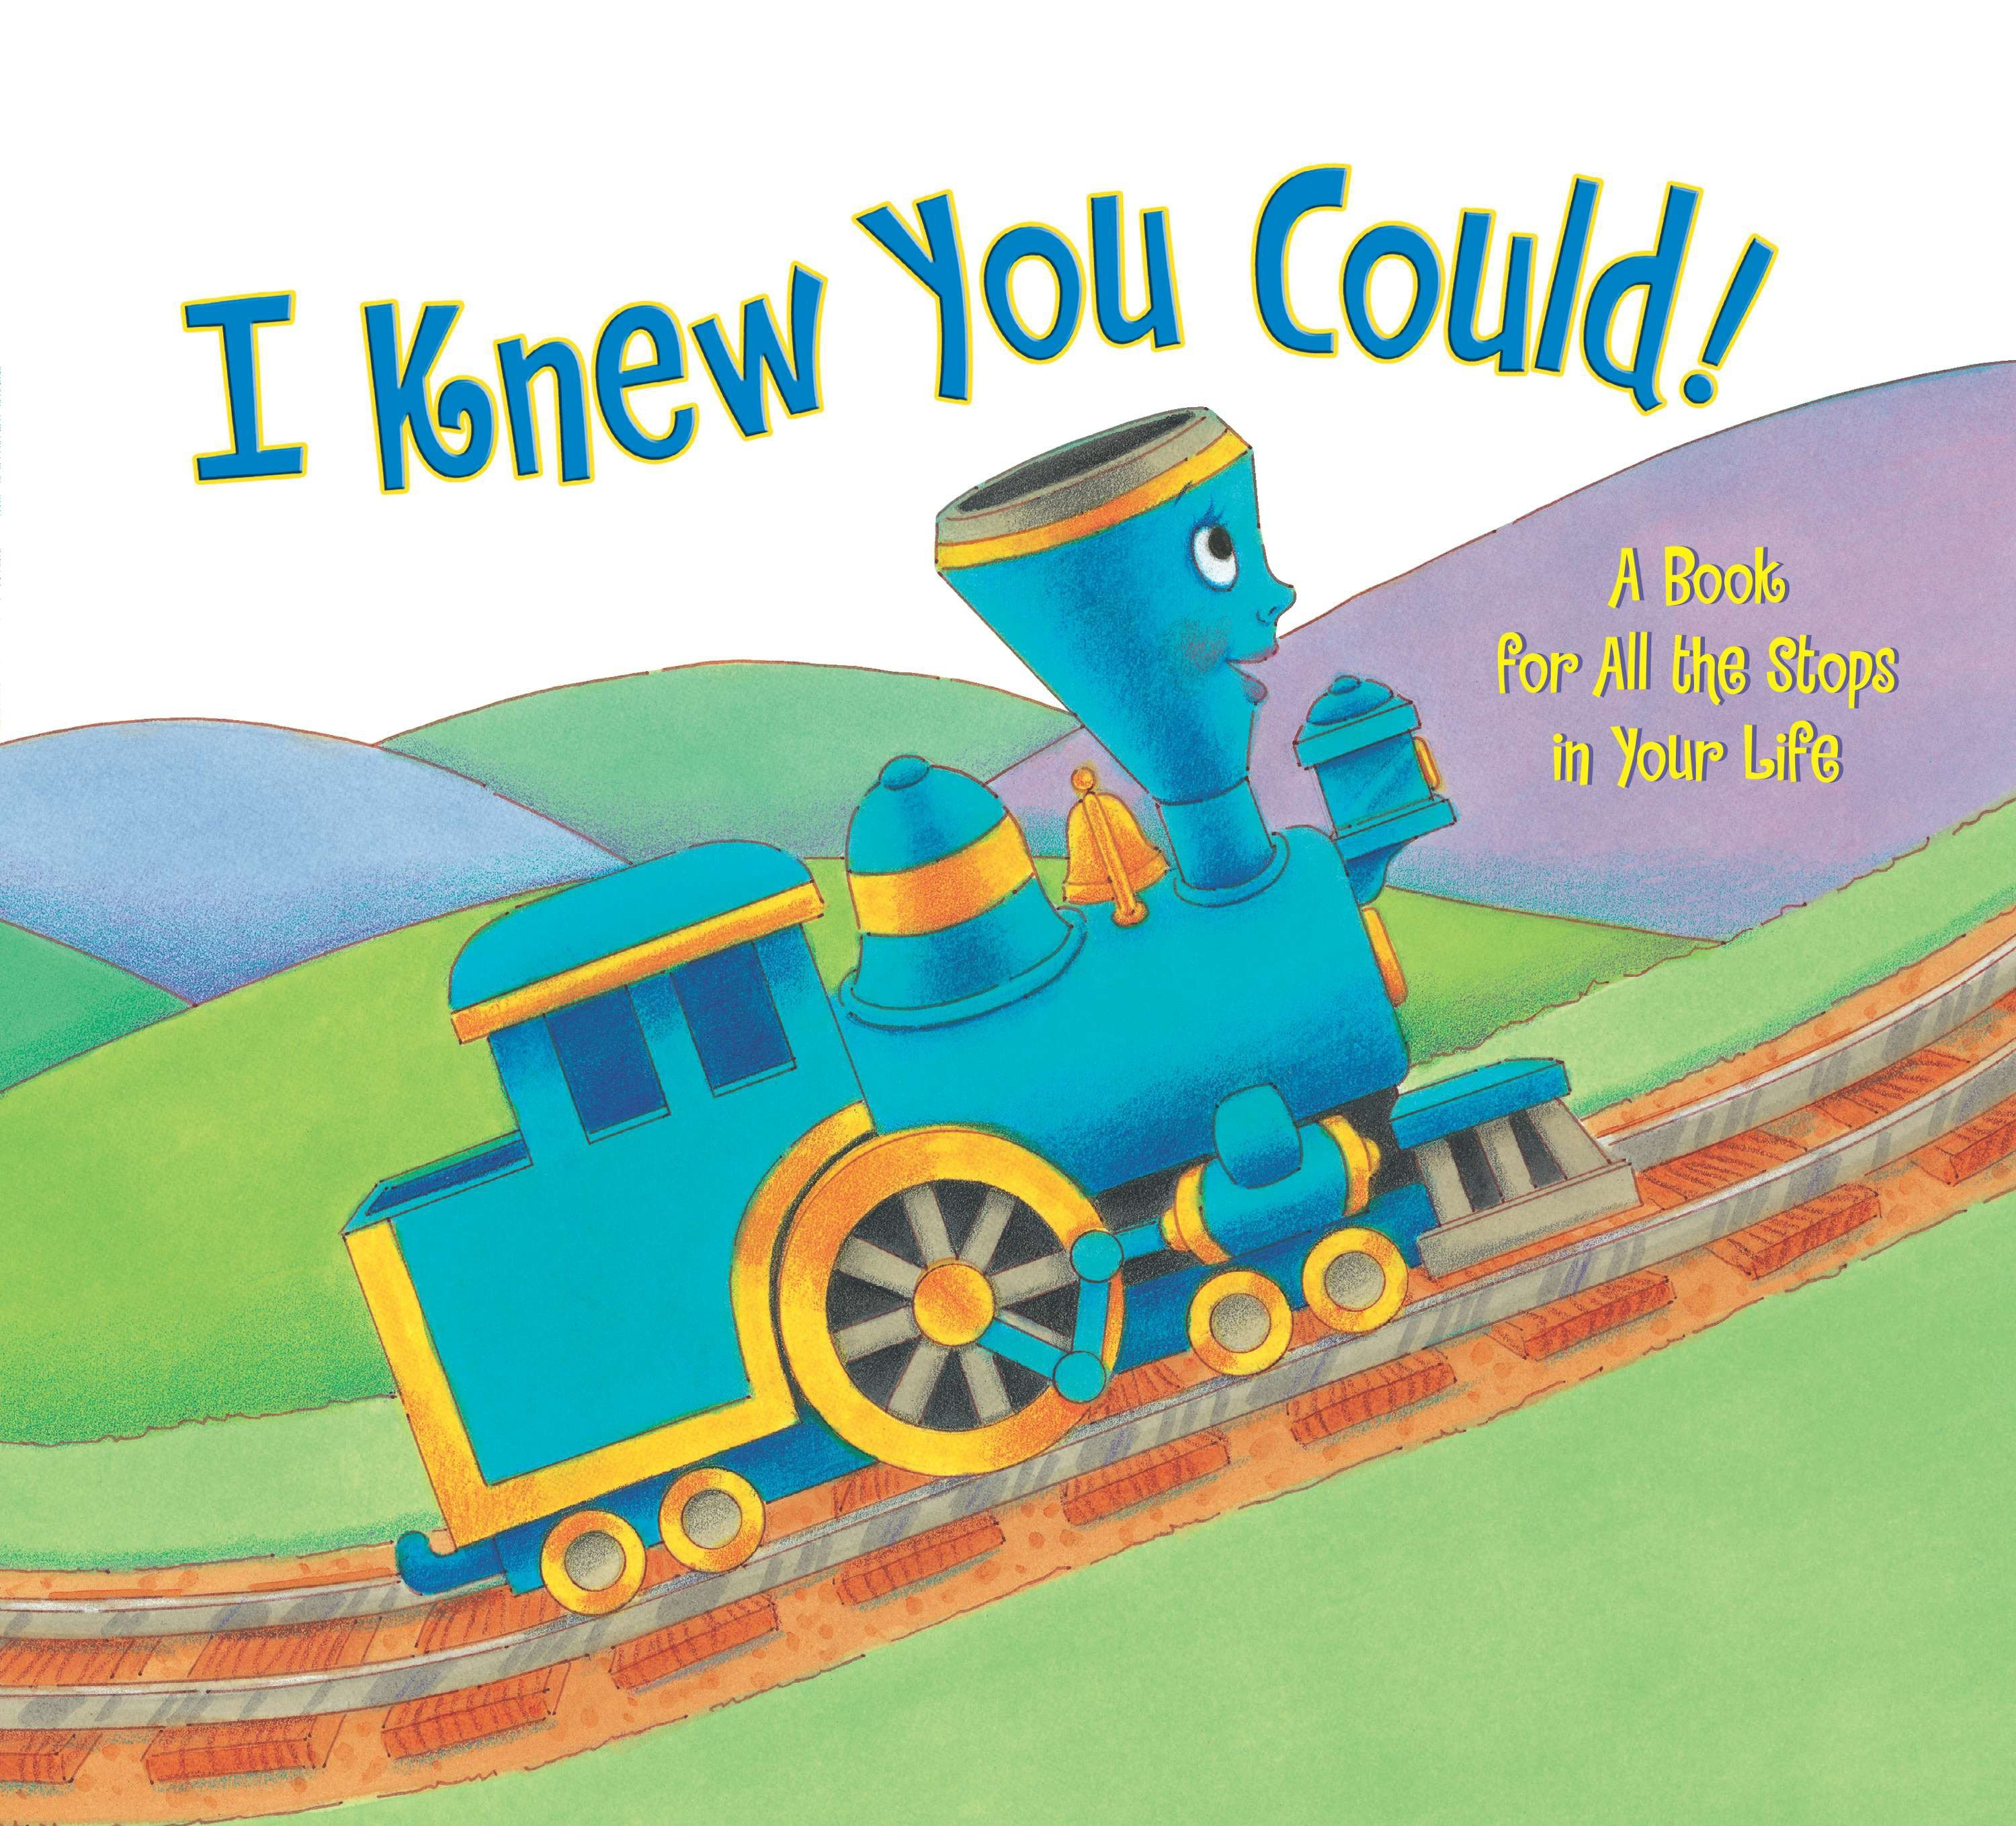 I Knew You Could! : A Book for All the Stops in Your Life